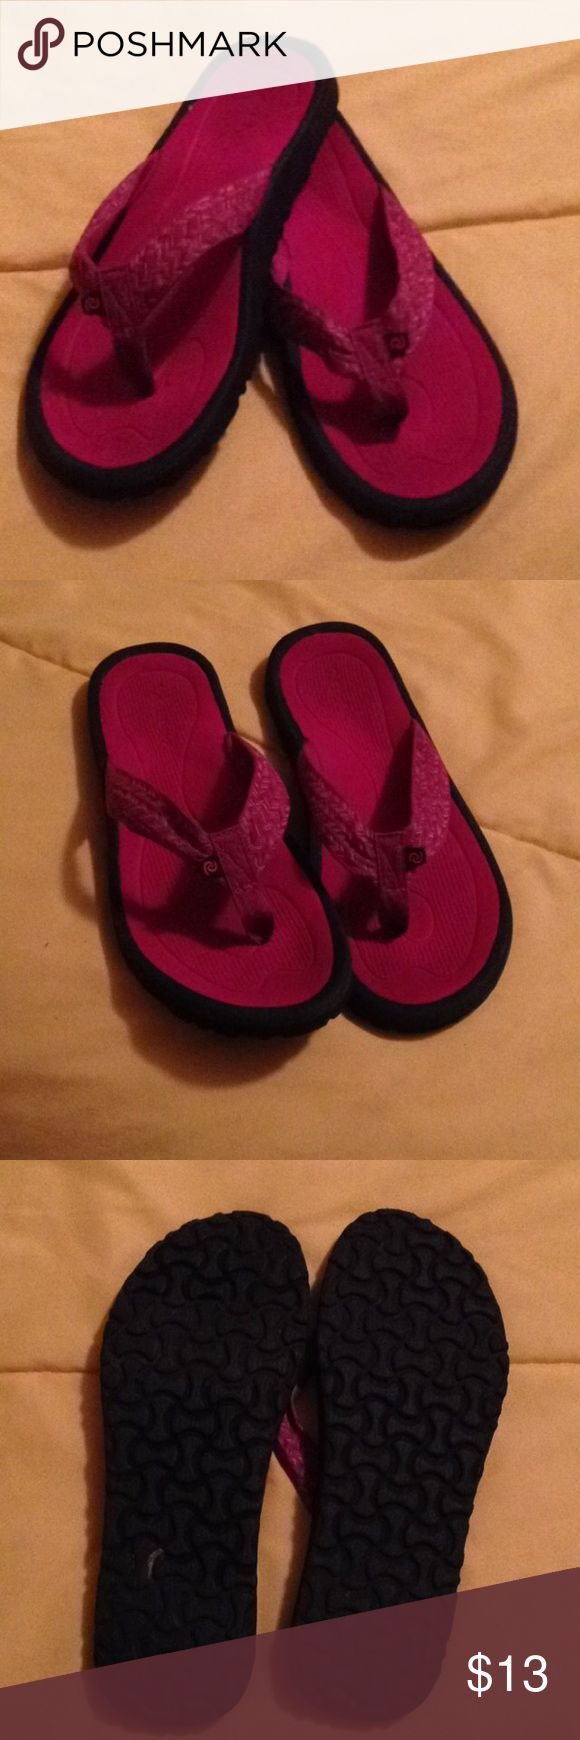 Rafter Sandals Like new Rafter sandals. Super comfortable. Rafter Shoes Sandals